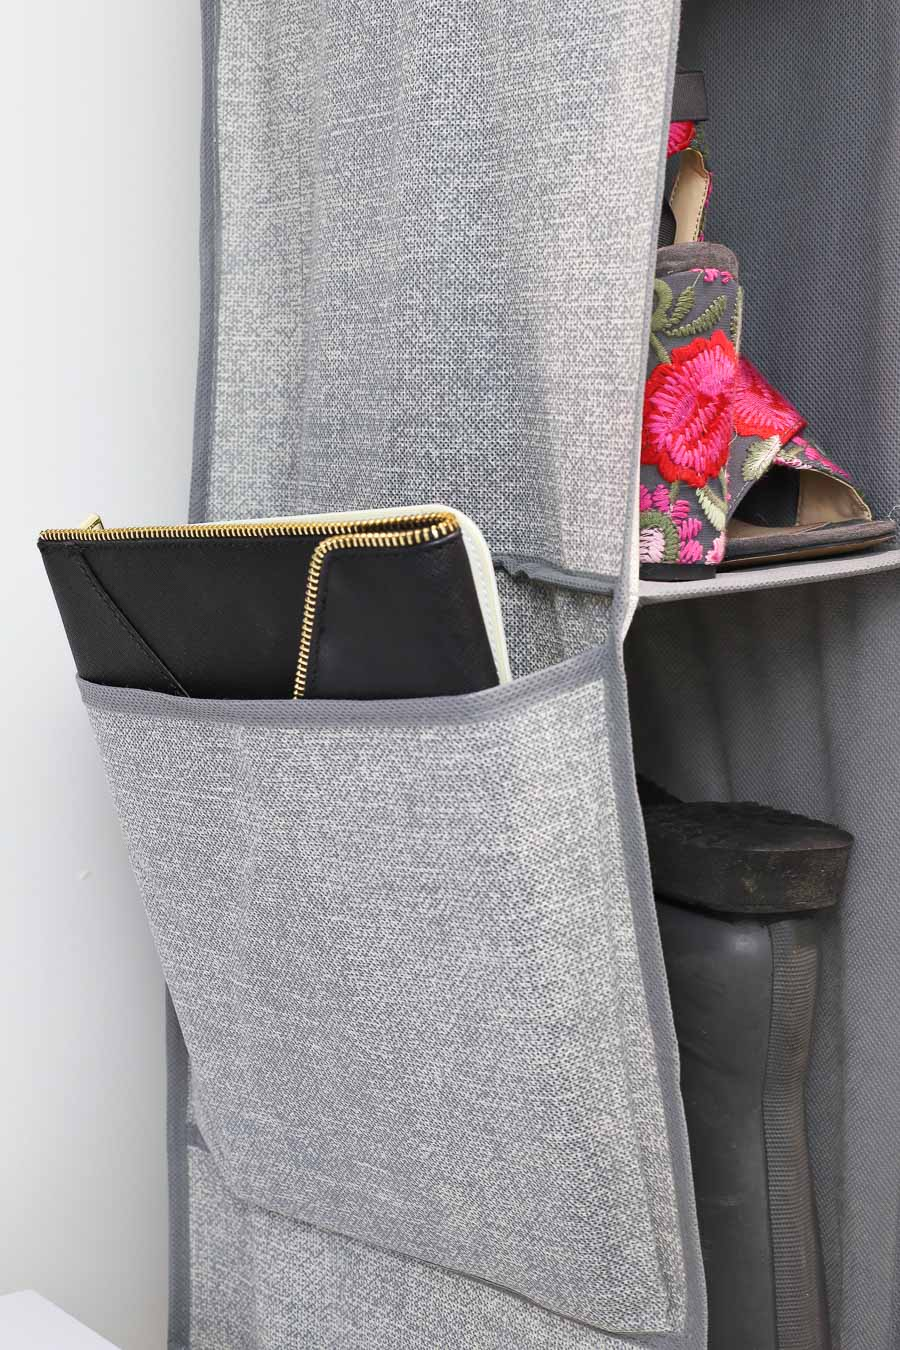 Storage pocket on the side of a hanging shoe and boot organizer - smart organization idea!